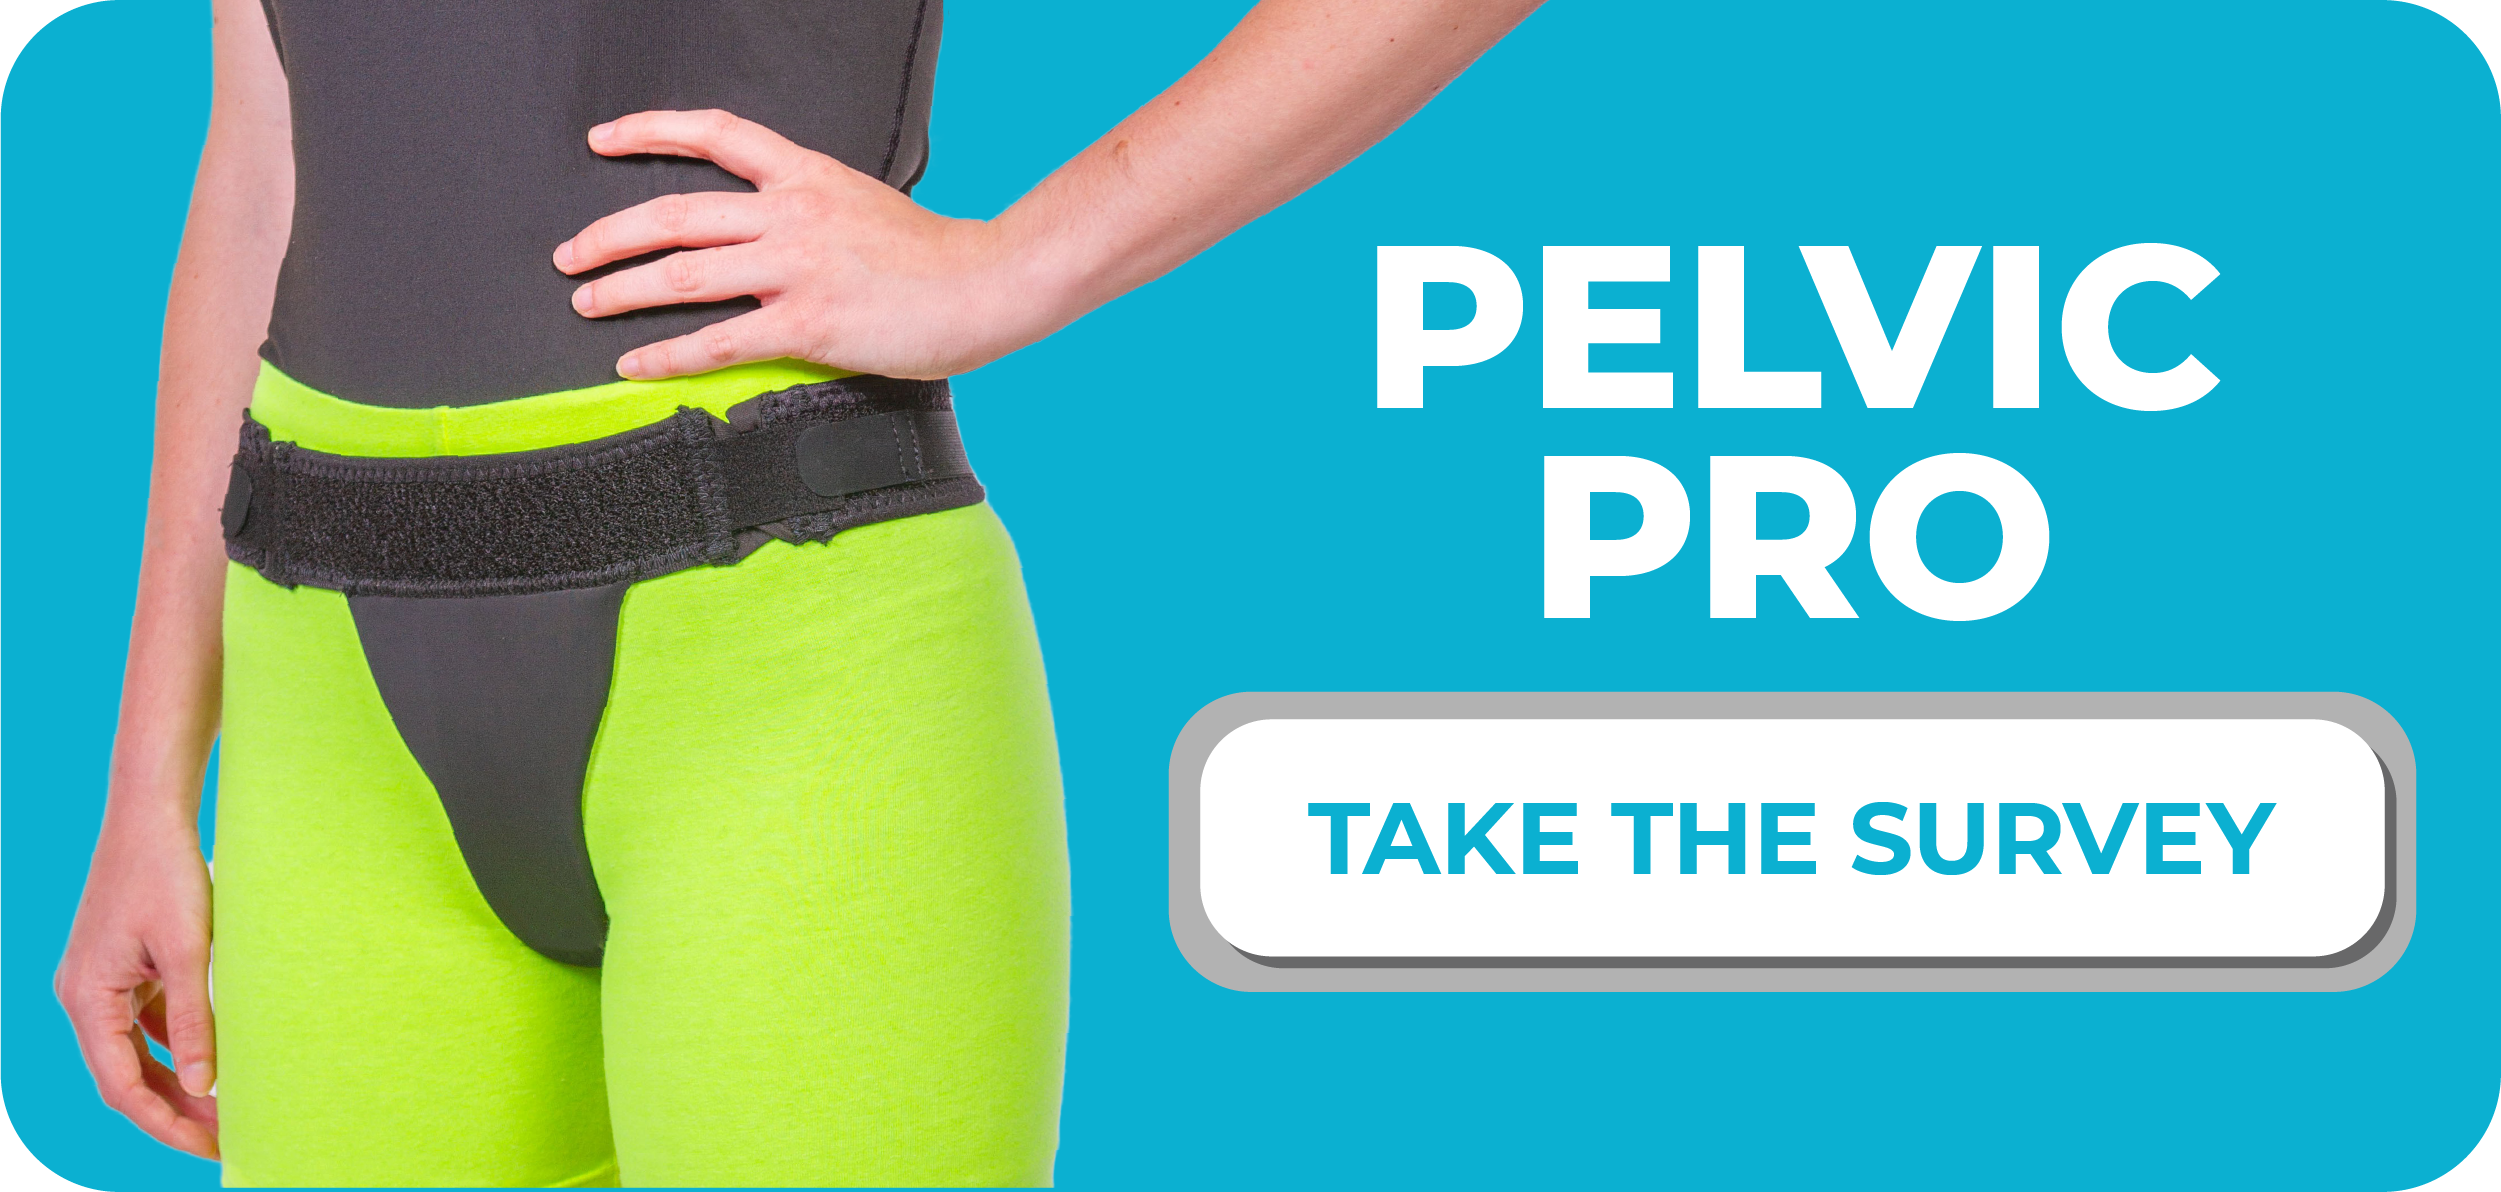 take our survey to let us know how our pelvic prolapse brace worked for you